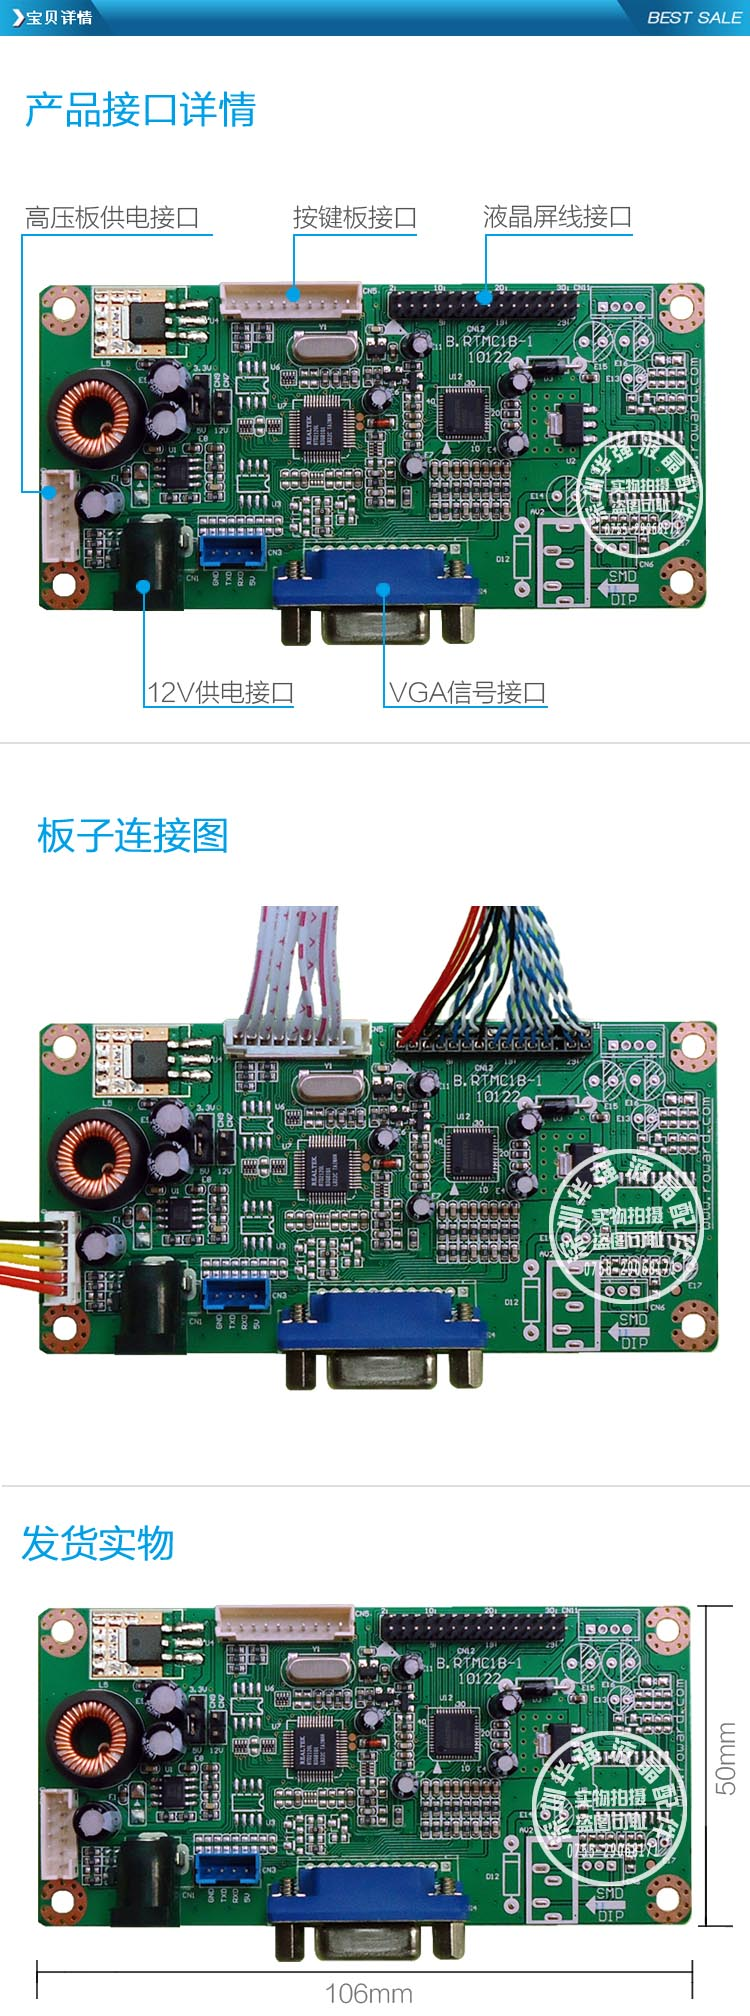 RTD2025L ROWARD PC DRIVER BOARD B.RTMC1B-1 up for 19inch LCD with DC and VGA connector